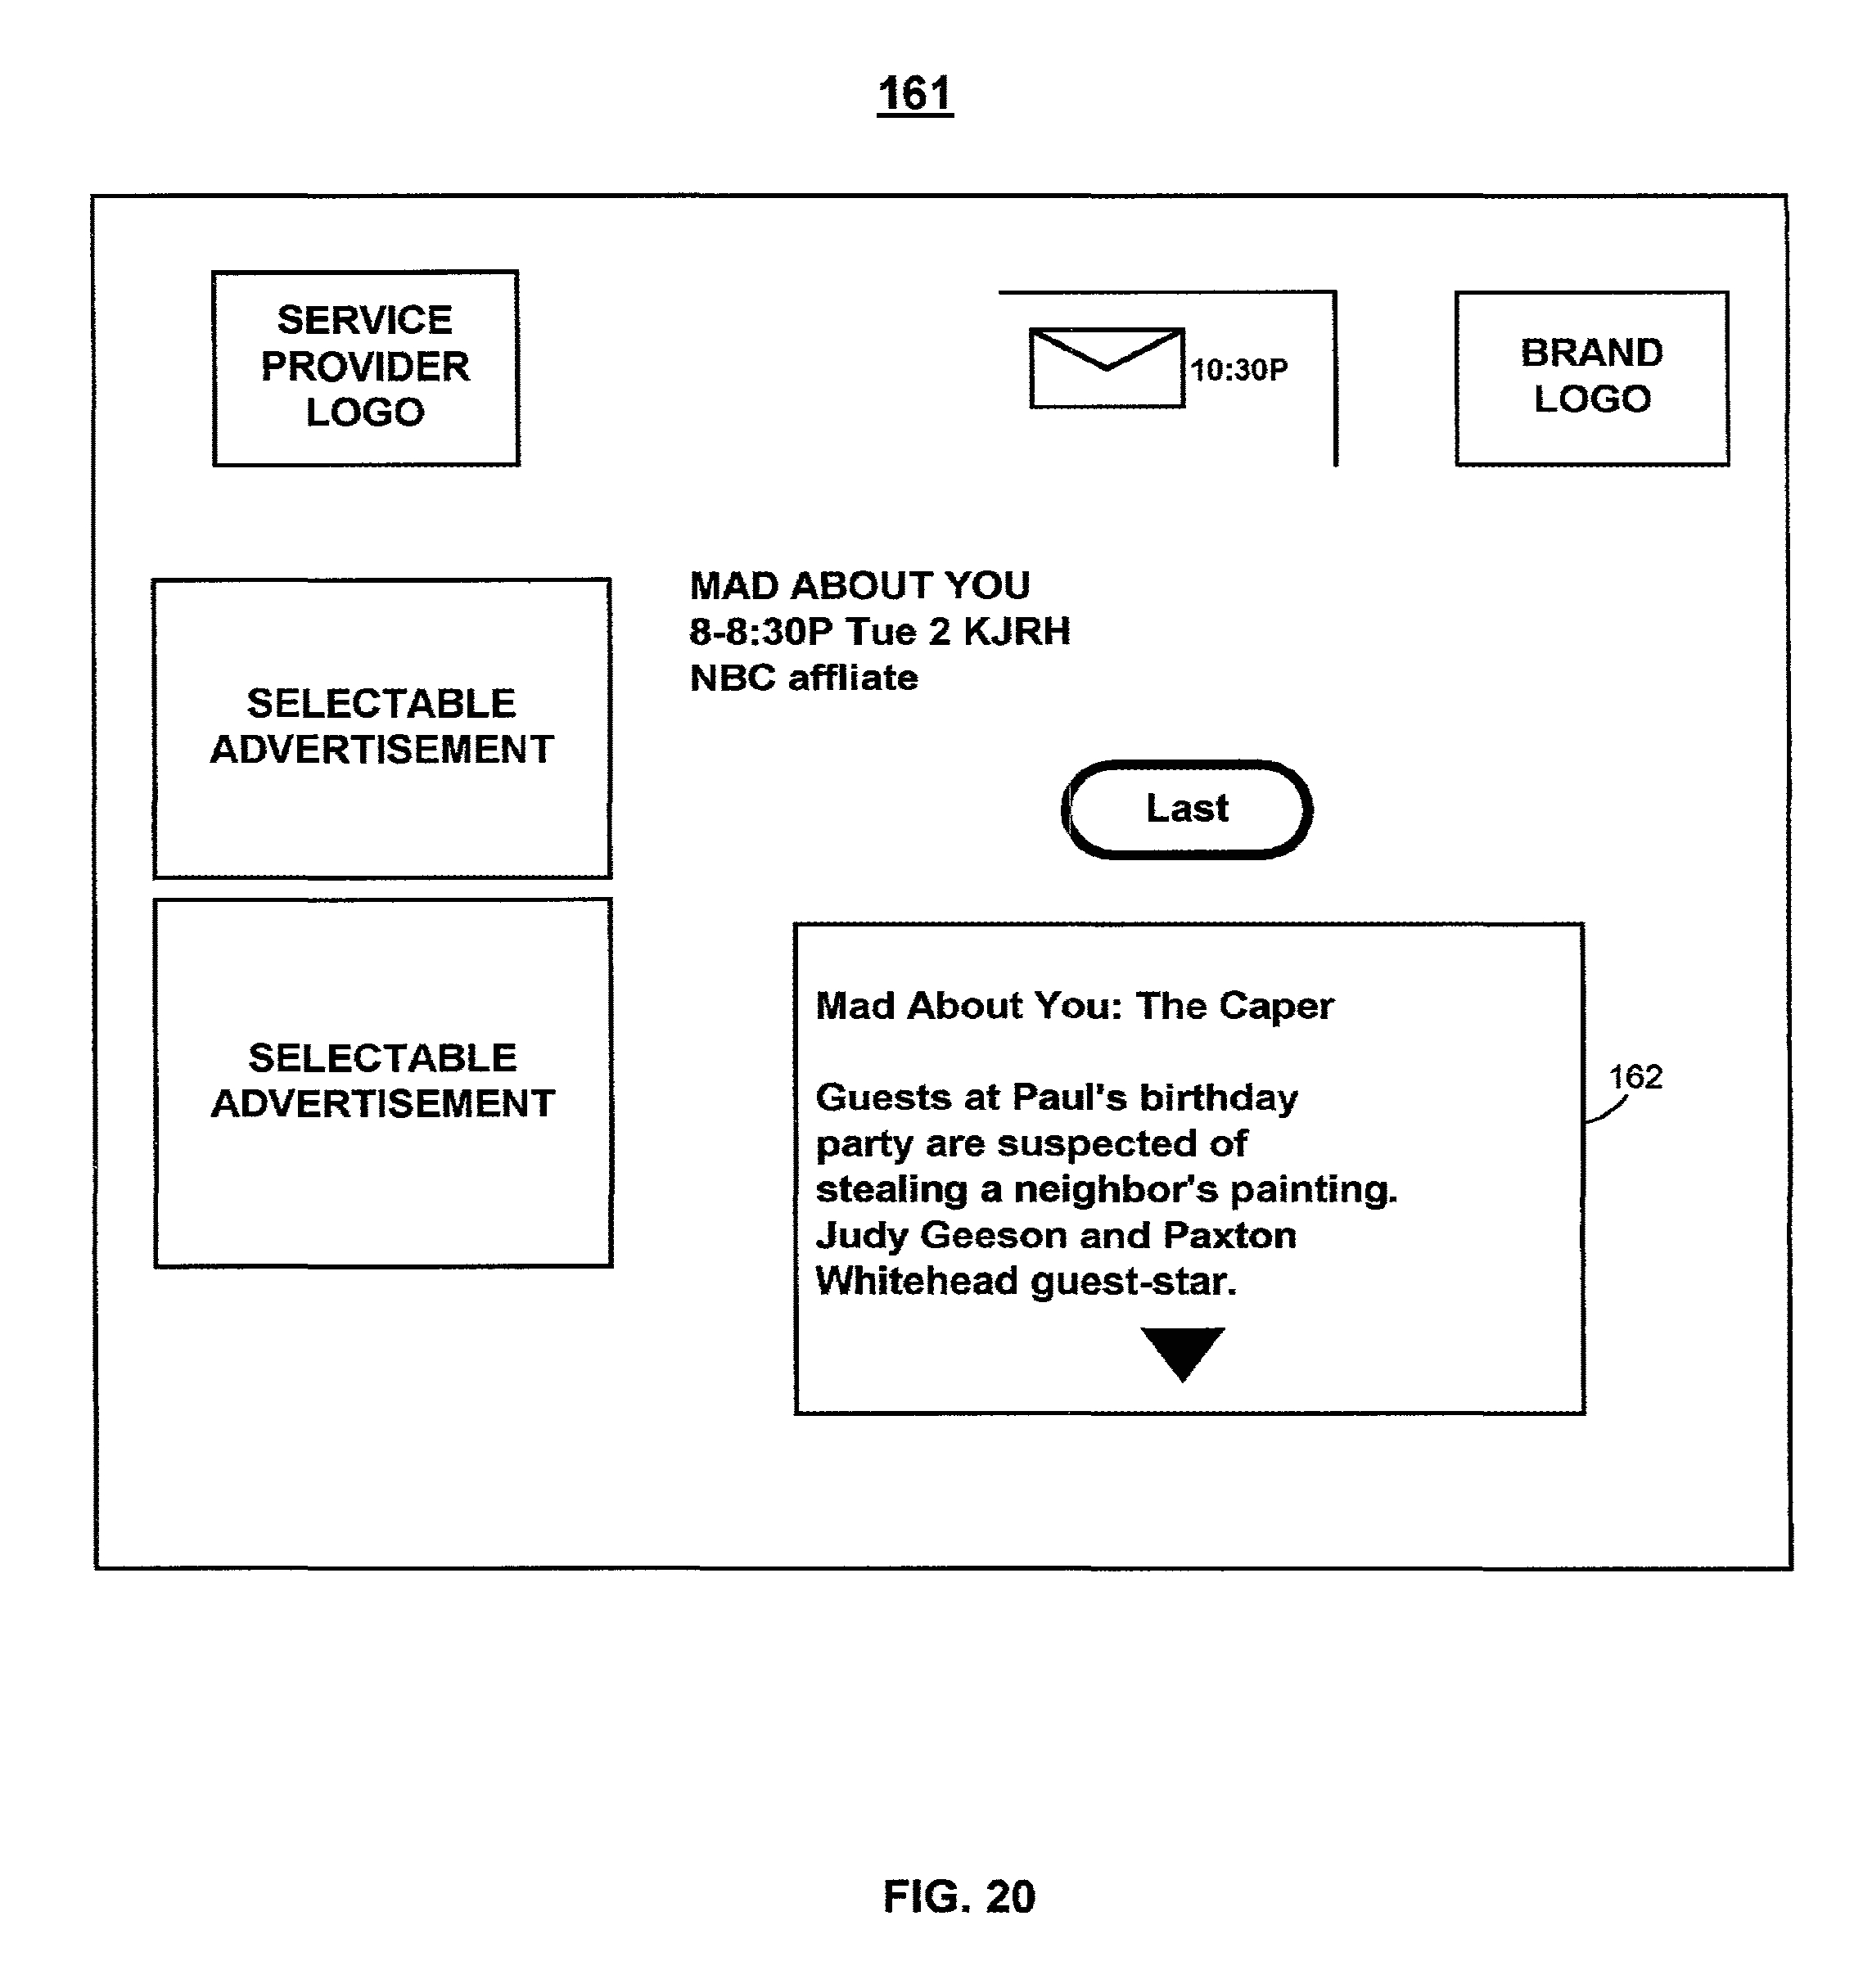 us9055318b2 client server based interactive guide with server storage google patents